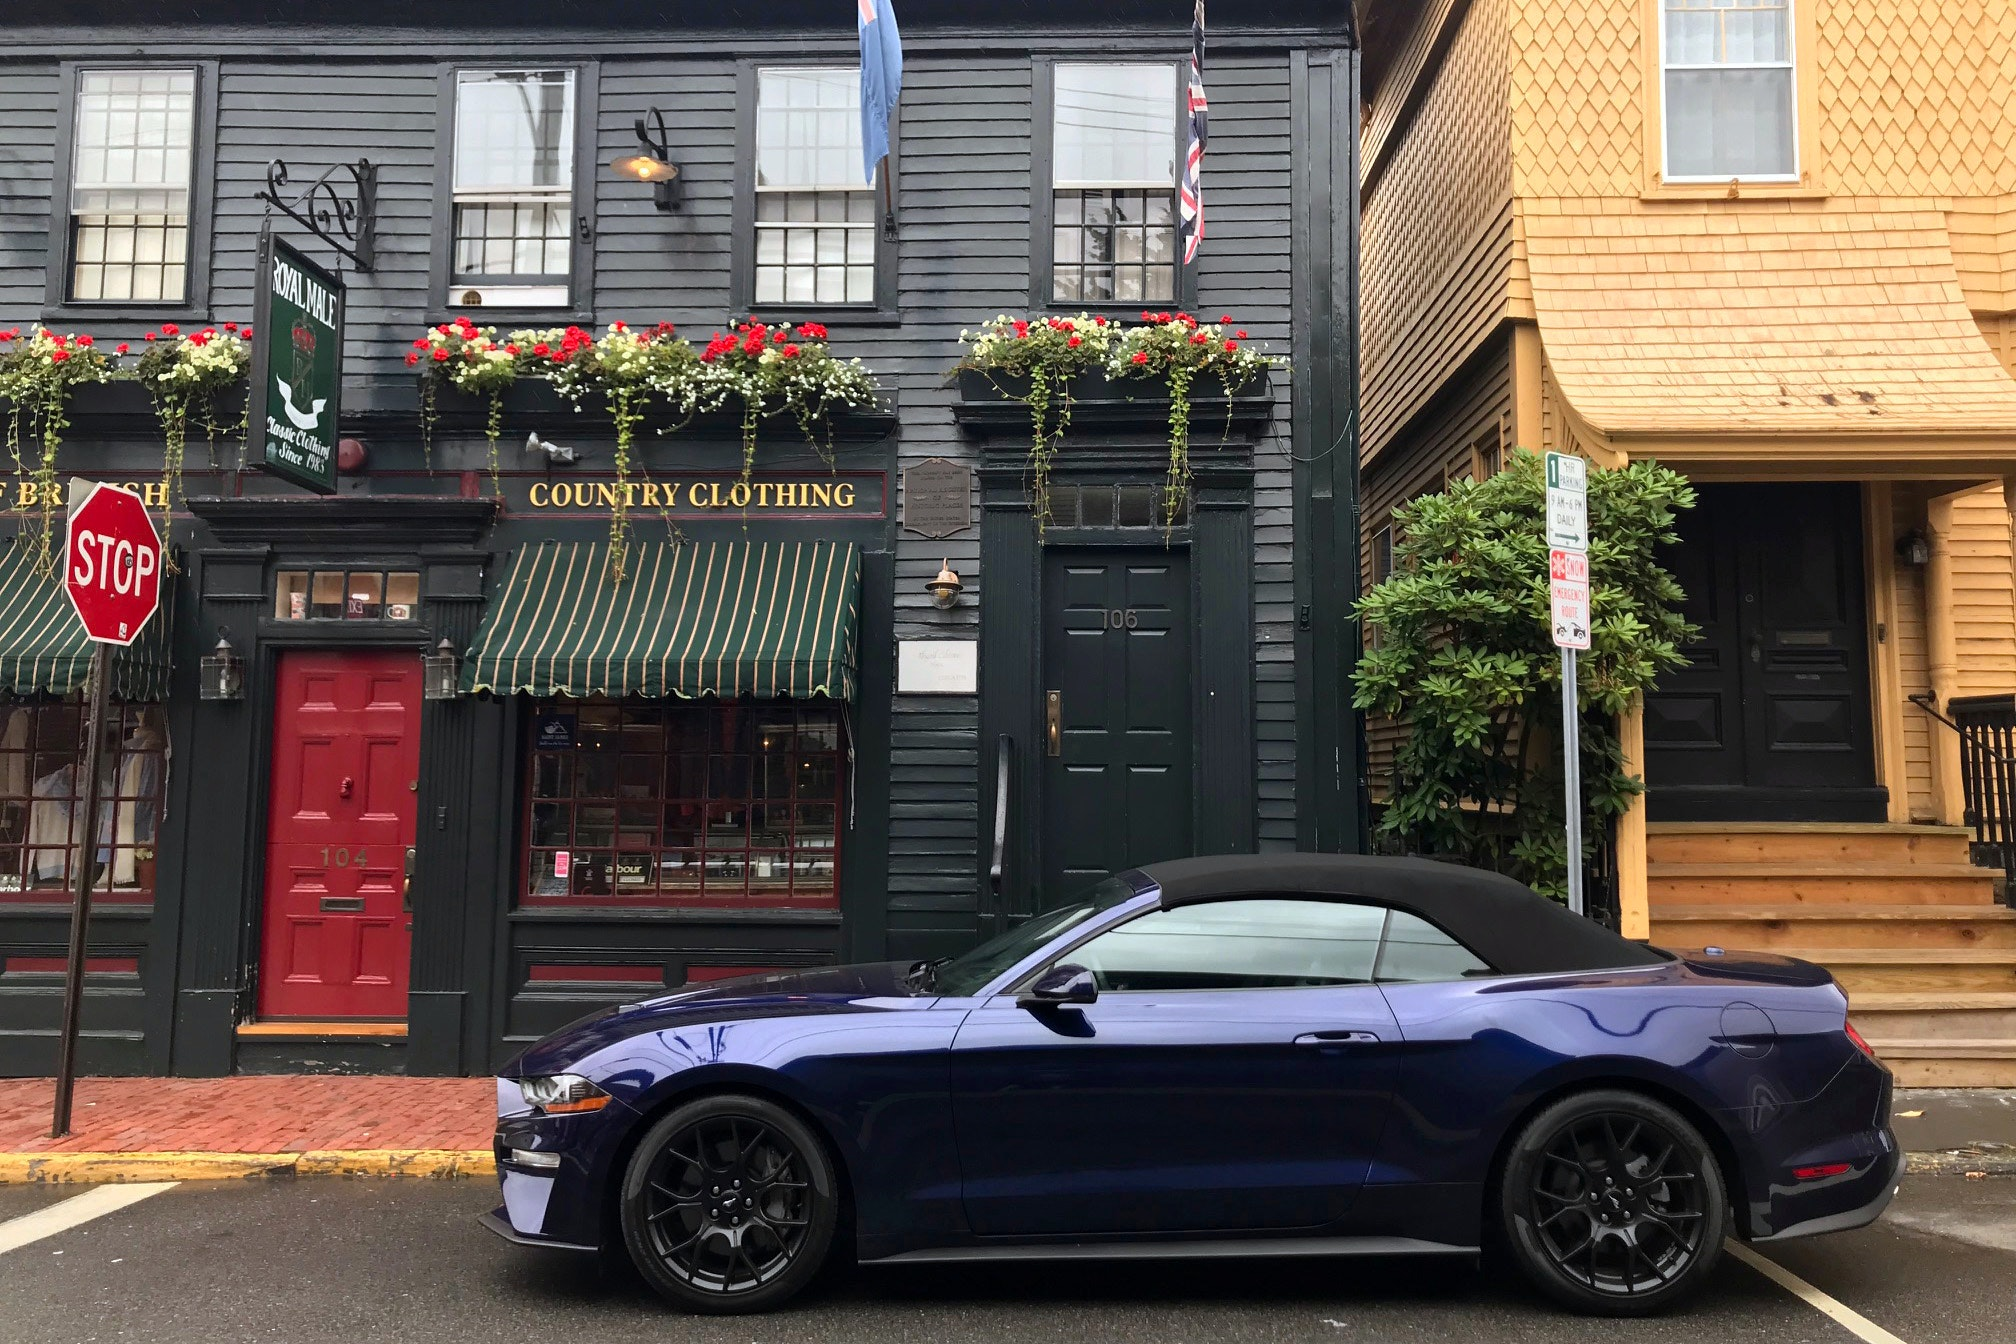 Exploring Newport in a 2018 Ford Mustang